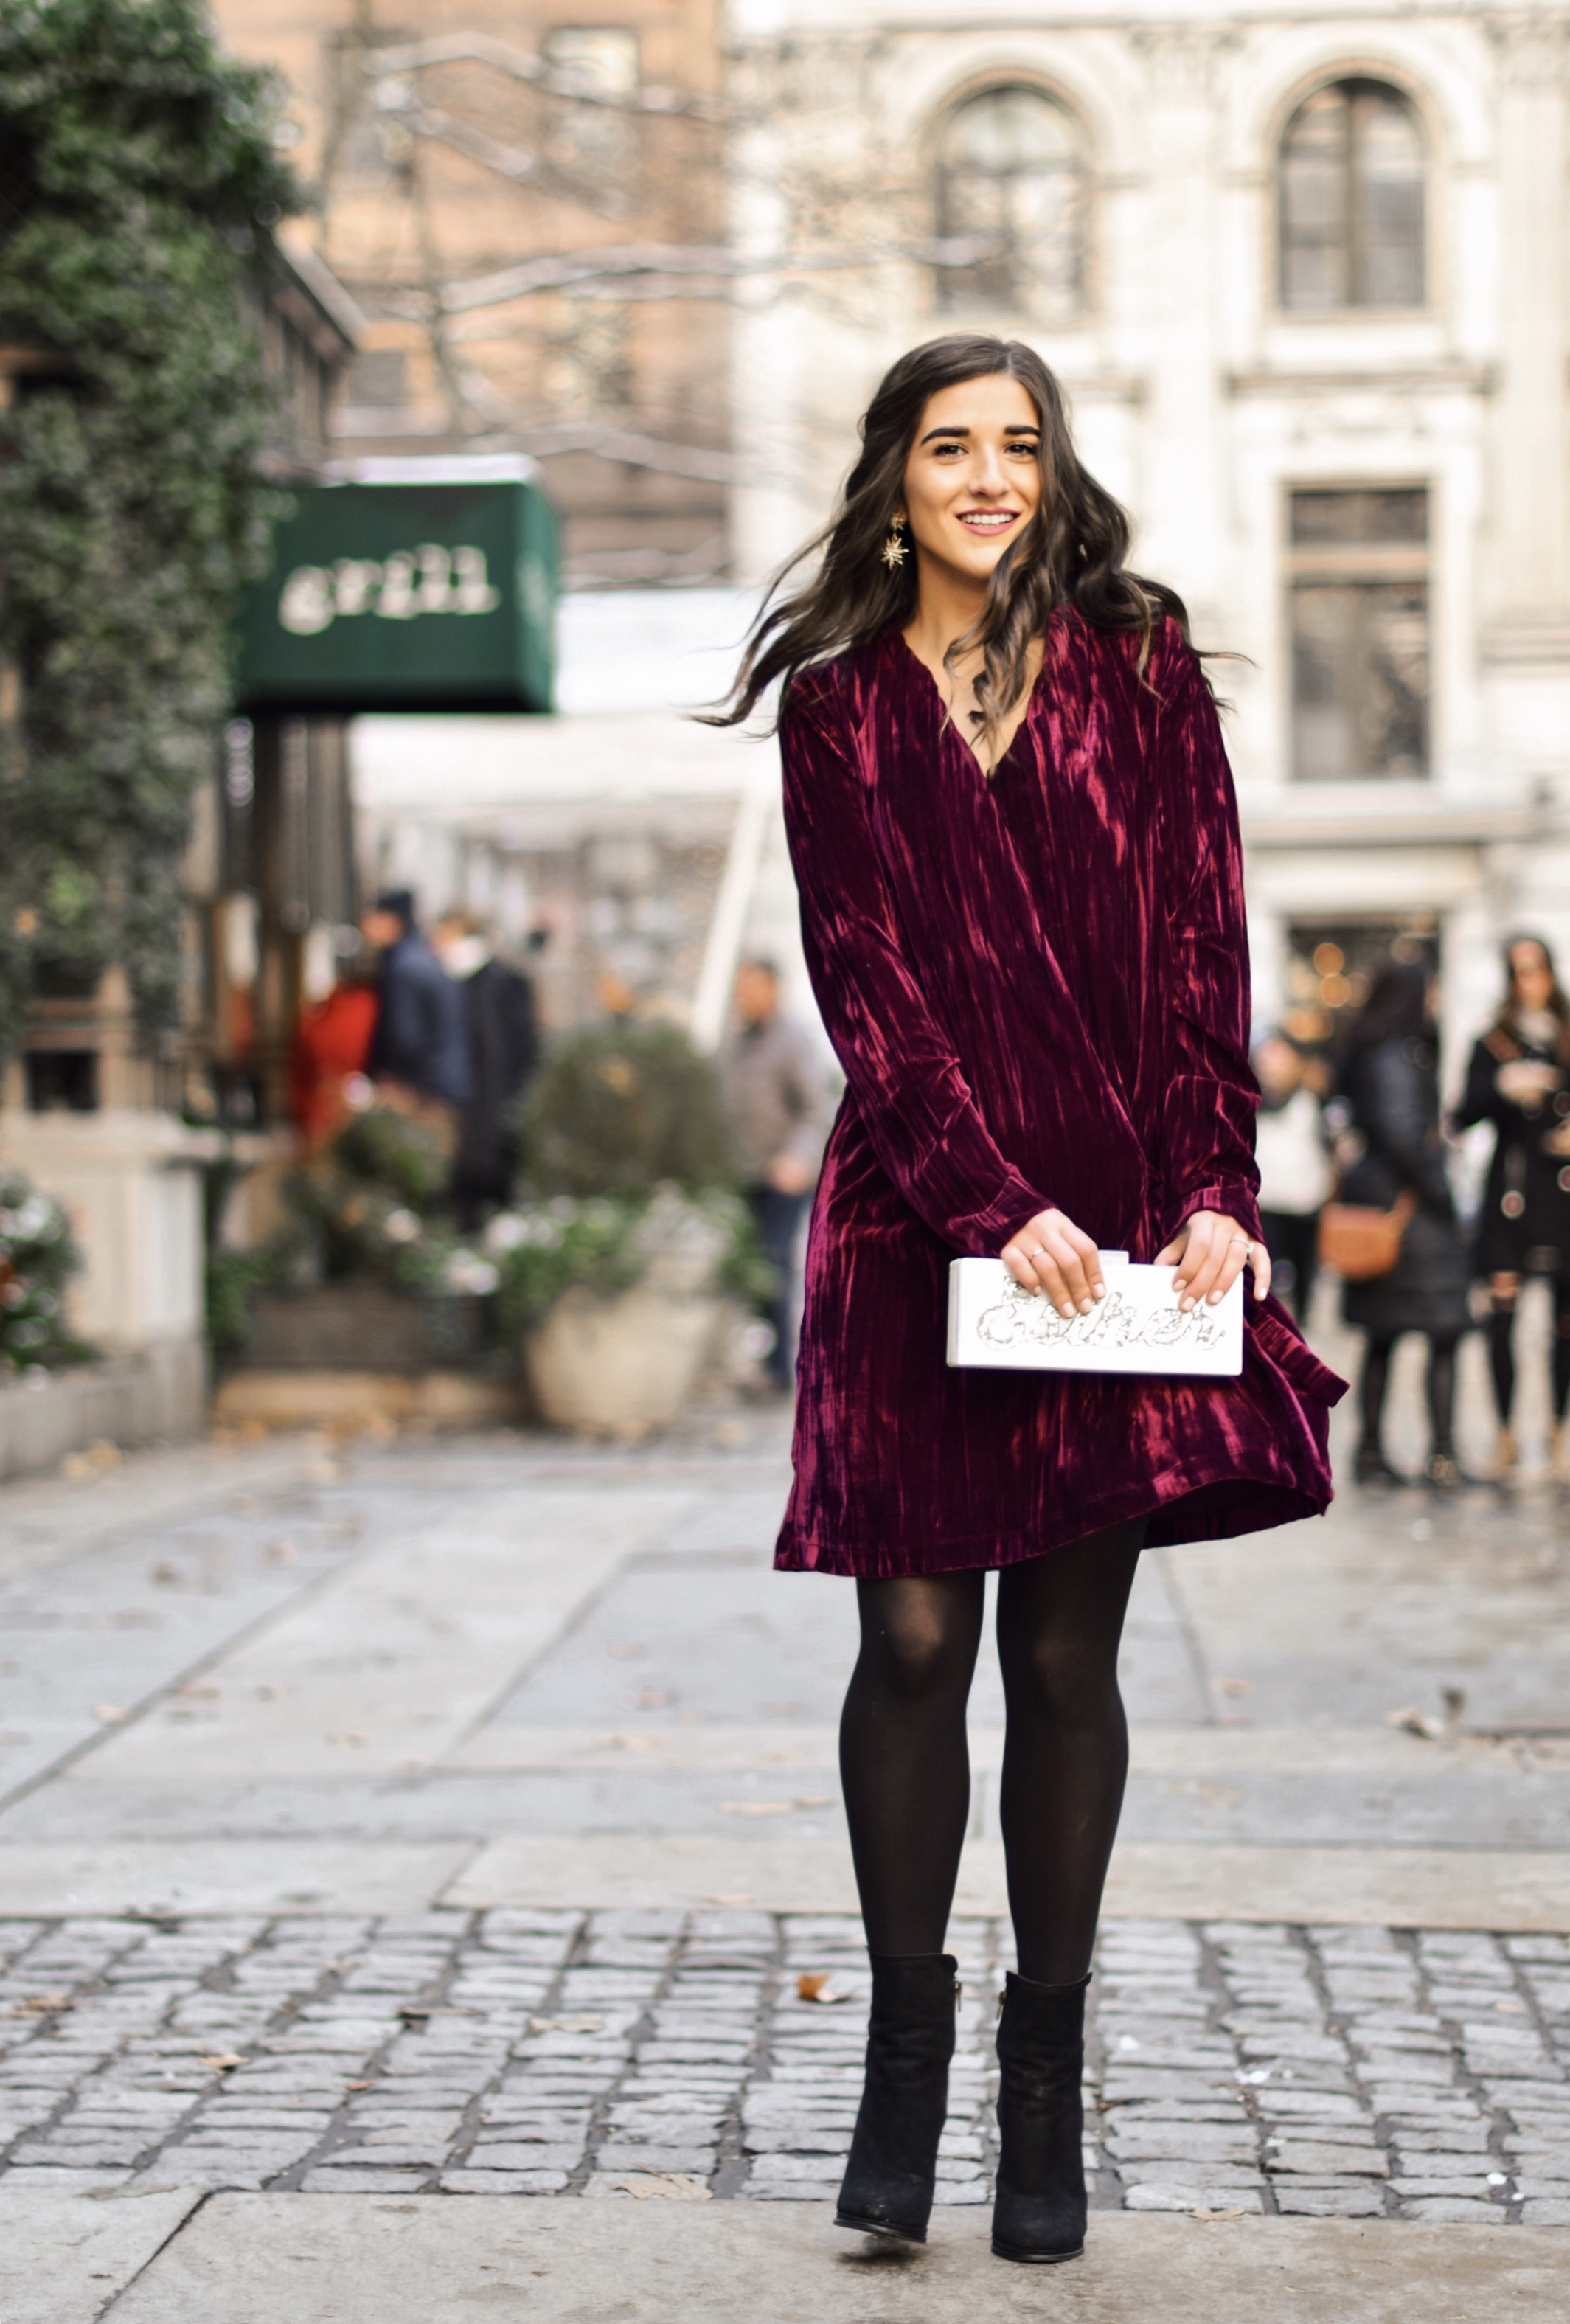 17 Tips On Building An Instagram Following Maroon Velvet Dress Black Booties Esther Santer Fashion Blog NYC Street Style Blogger Outfit OOTD Trendy Zara Online Shopping Winter Monogram Box Bag Clutch M4D3 Shoes Wavy Hair Hue Tights Wear Classic Simple.jpg